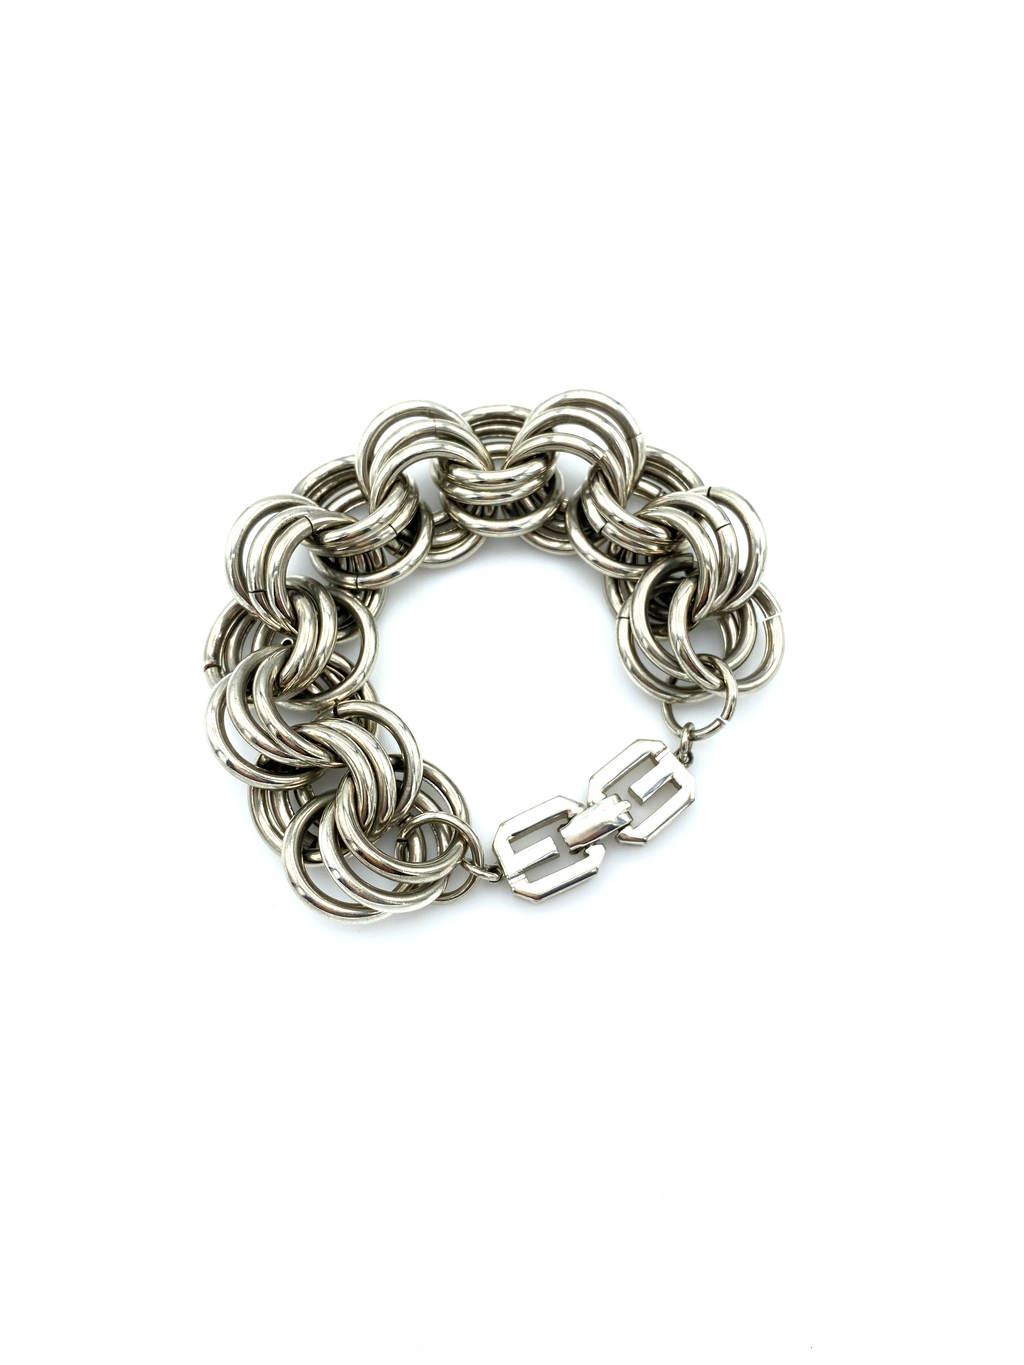 Givenchy Silver Three Link Stacking Chain Vintage Bracelet-Sustainable Fashion with Vintage Style-Trending Designer Fashion-24 Wishes